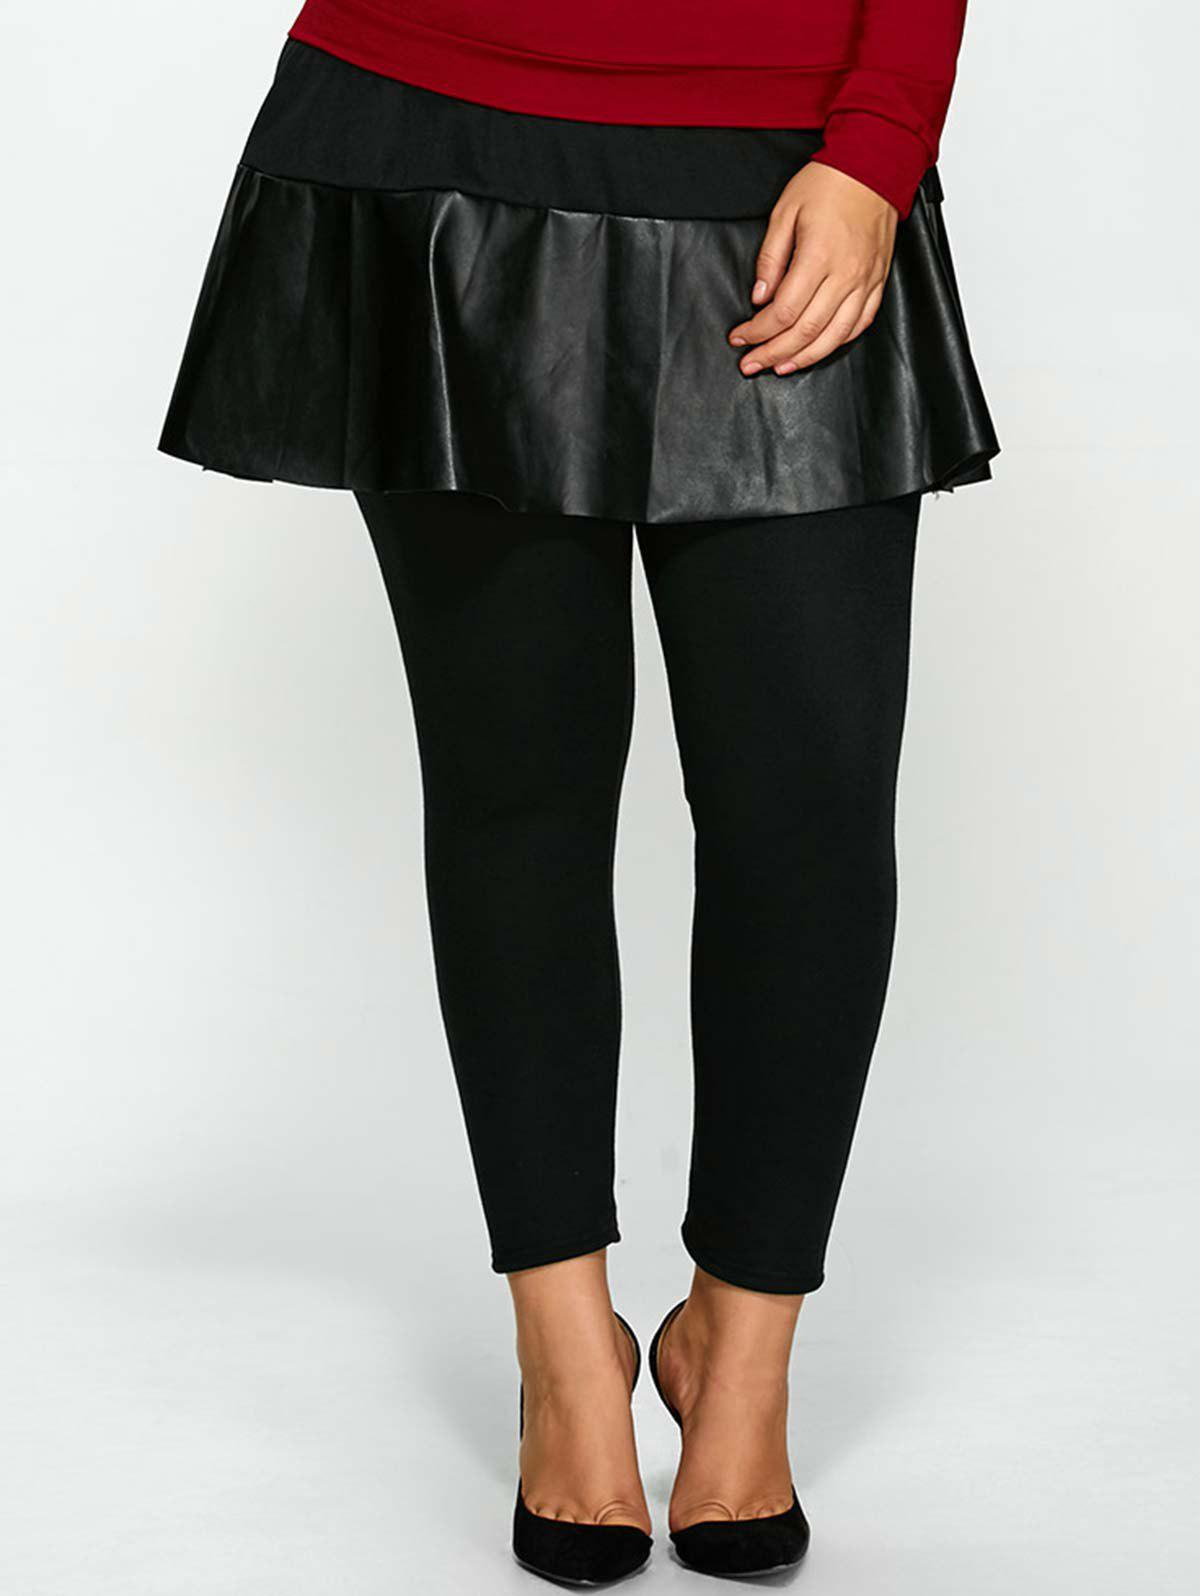 Skinny Plus Size PU Skirted PantsWOMEN<br><br>Size: 5XL; Color: BLACK; Style: Novelty; Length: Normal; Material: Faux Leather,Polyester; Fit Type: Skinny; Waist Type: High; Closure Type: Elastic Waist; Pattern Type: Patchwork; Pant Style: Pencil Pants; With Belt: No; Weight: 0.370kg; Package Contents: 1 x Pants;